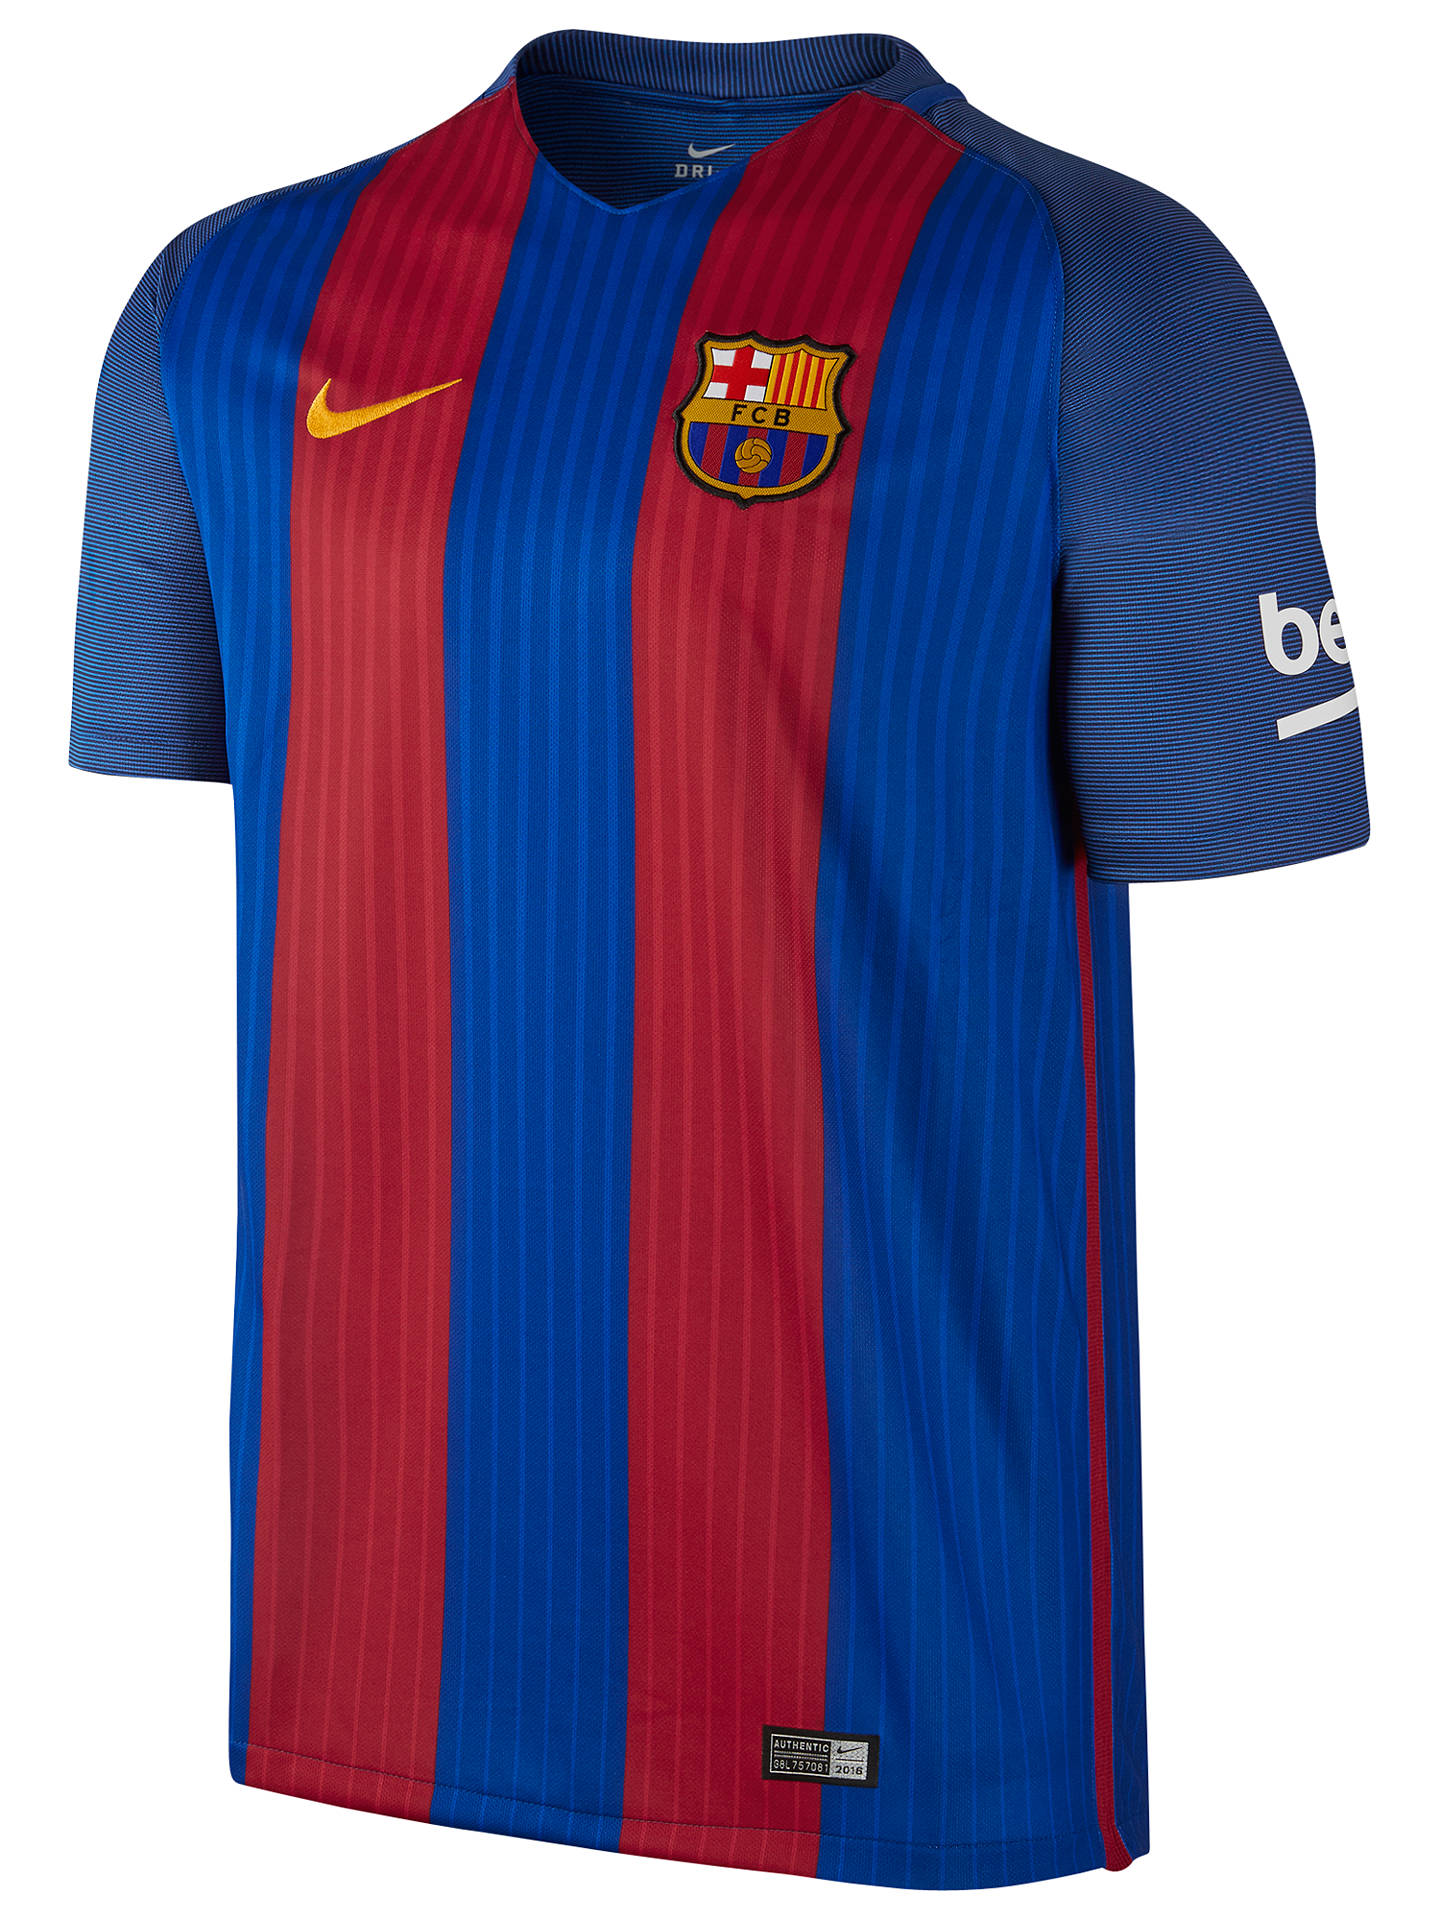 BuyNike Barcelona FC Home Football Shirt, Blue/Red, S Online at johnlewis.com